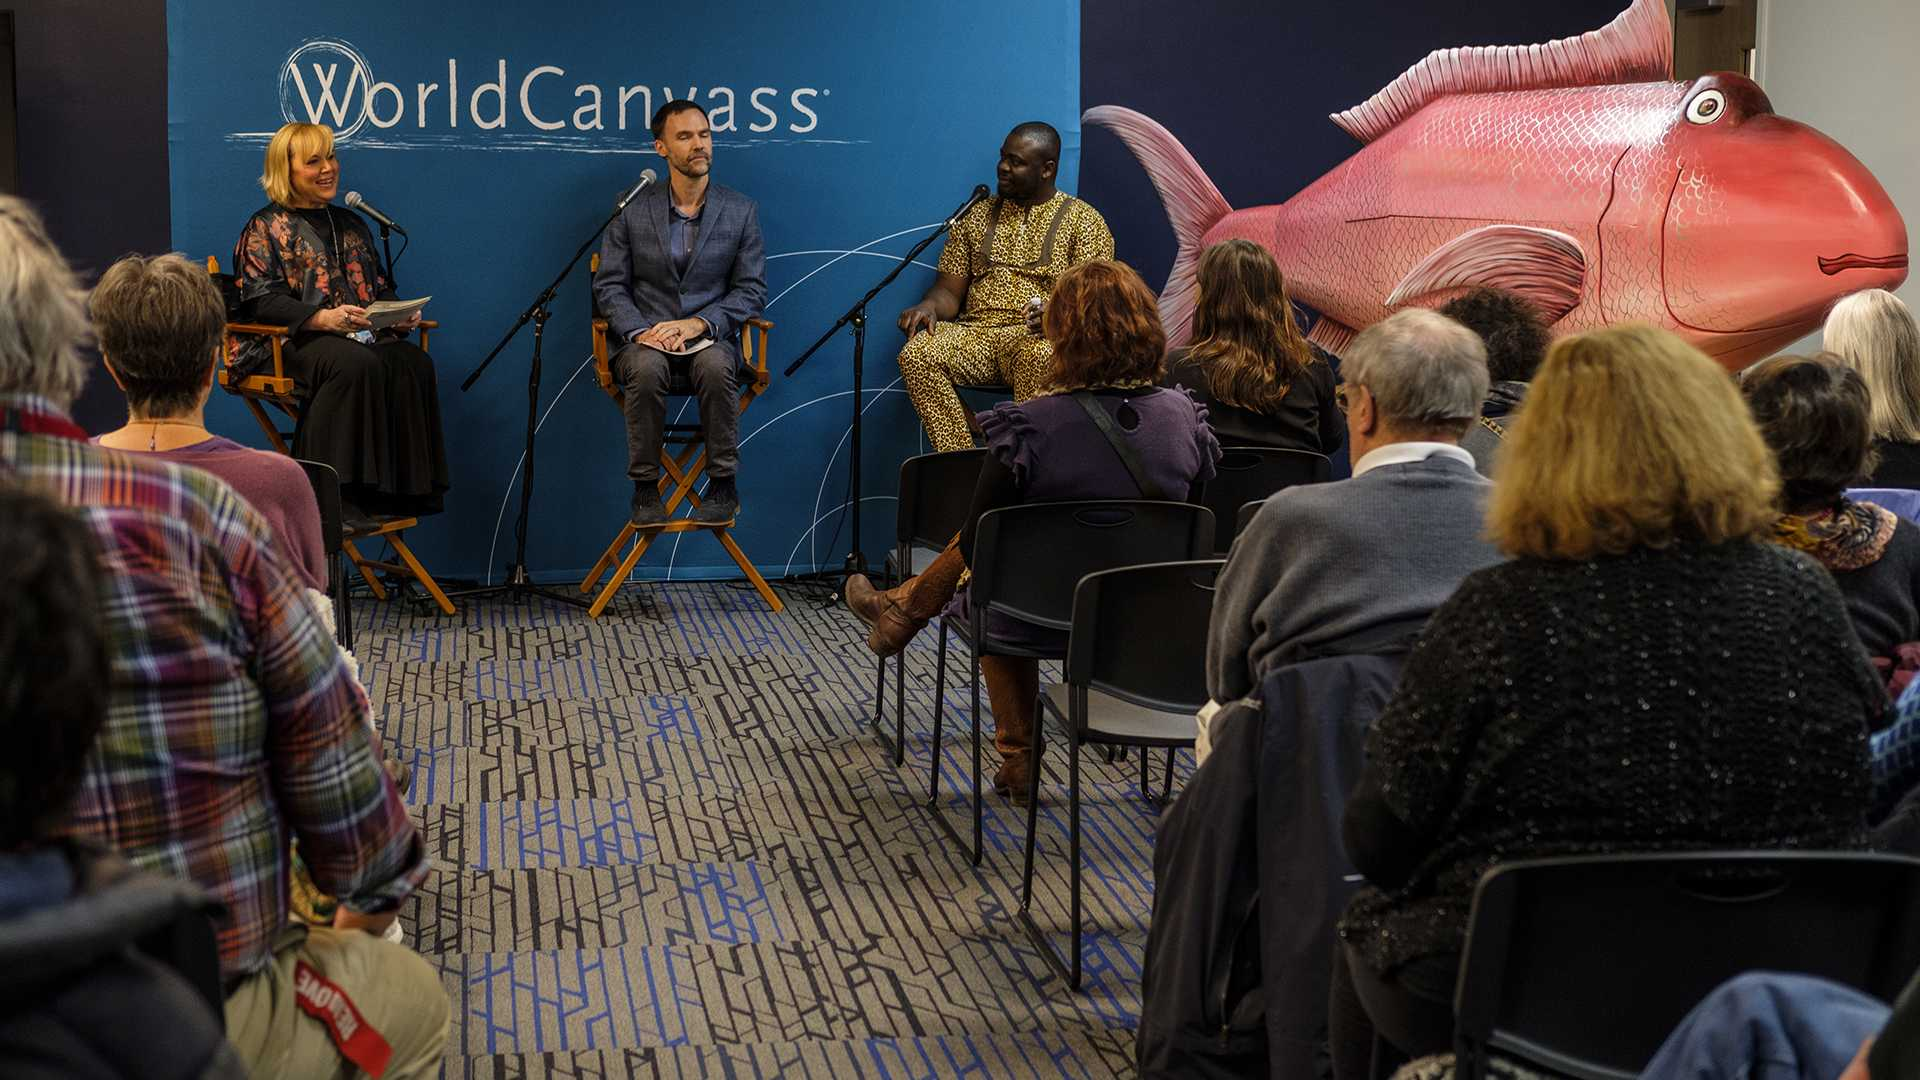 Host Joan Kjaer, Cory Gundlach, and UI Museum of Art artist-in-residence Eric Adjetey Anang speak at a World Canvass event at Merge in Iowa City on Thursday, Dec. 7, 2017. The night's event focused on art and the afterlife and featured a large fish shaped coffin made by Anang. (Nick Rohlman/The Daily Iowan)